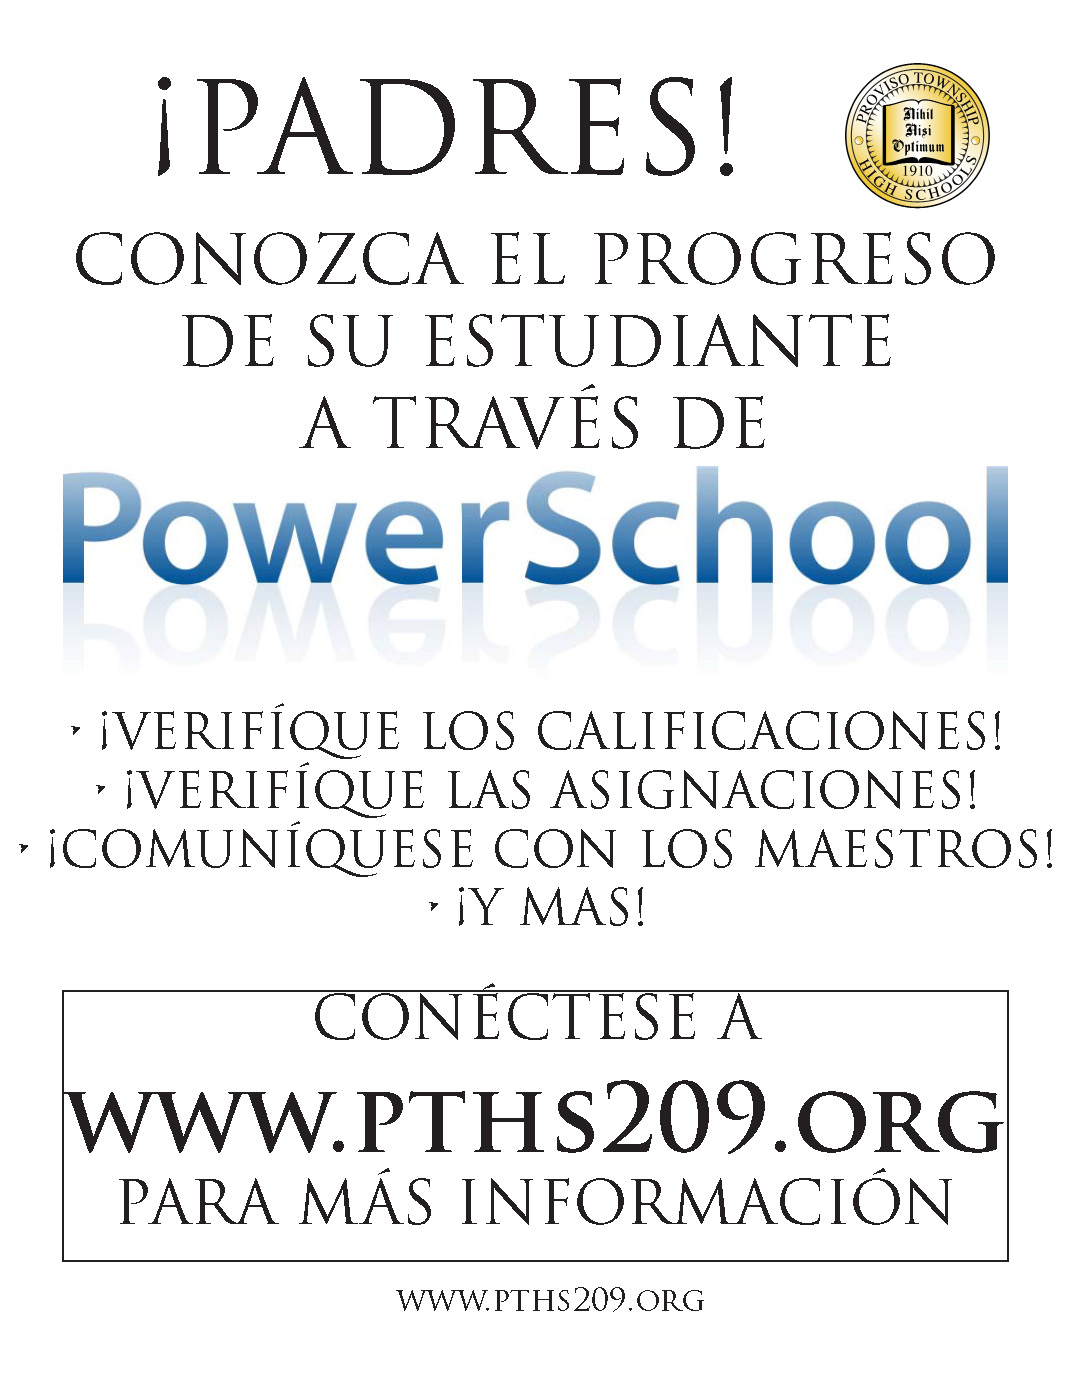 Spanish Power School Instructions Button